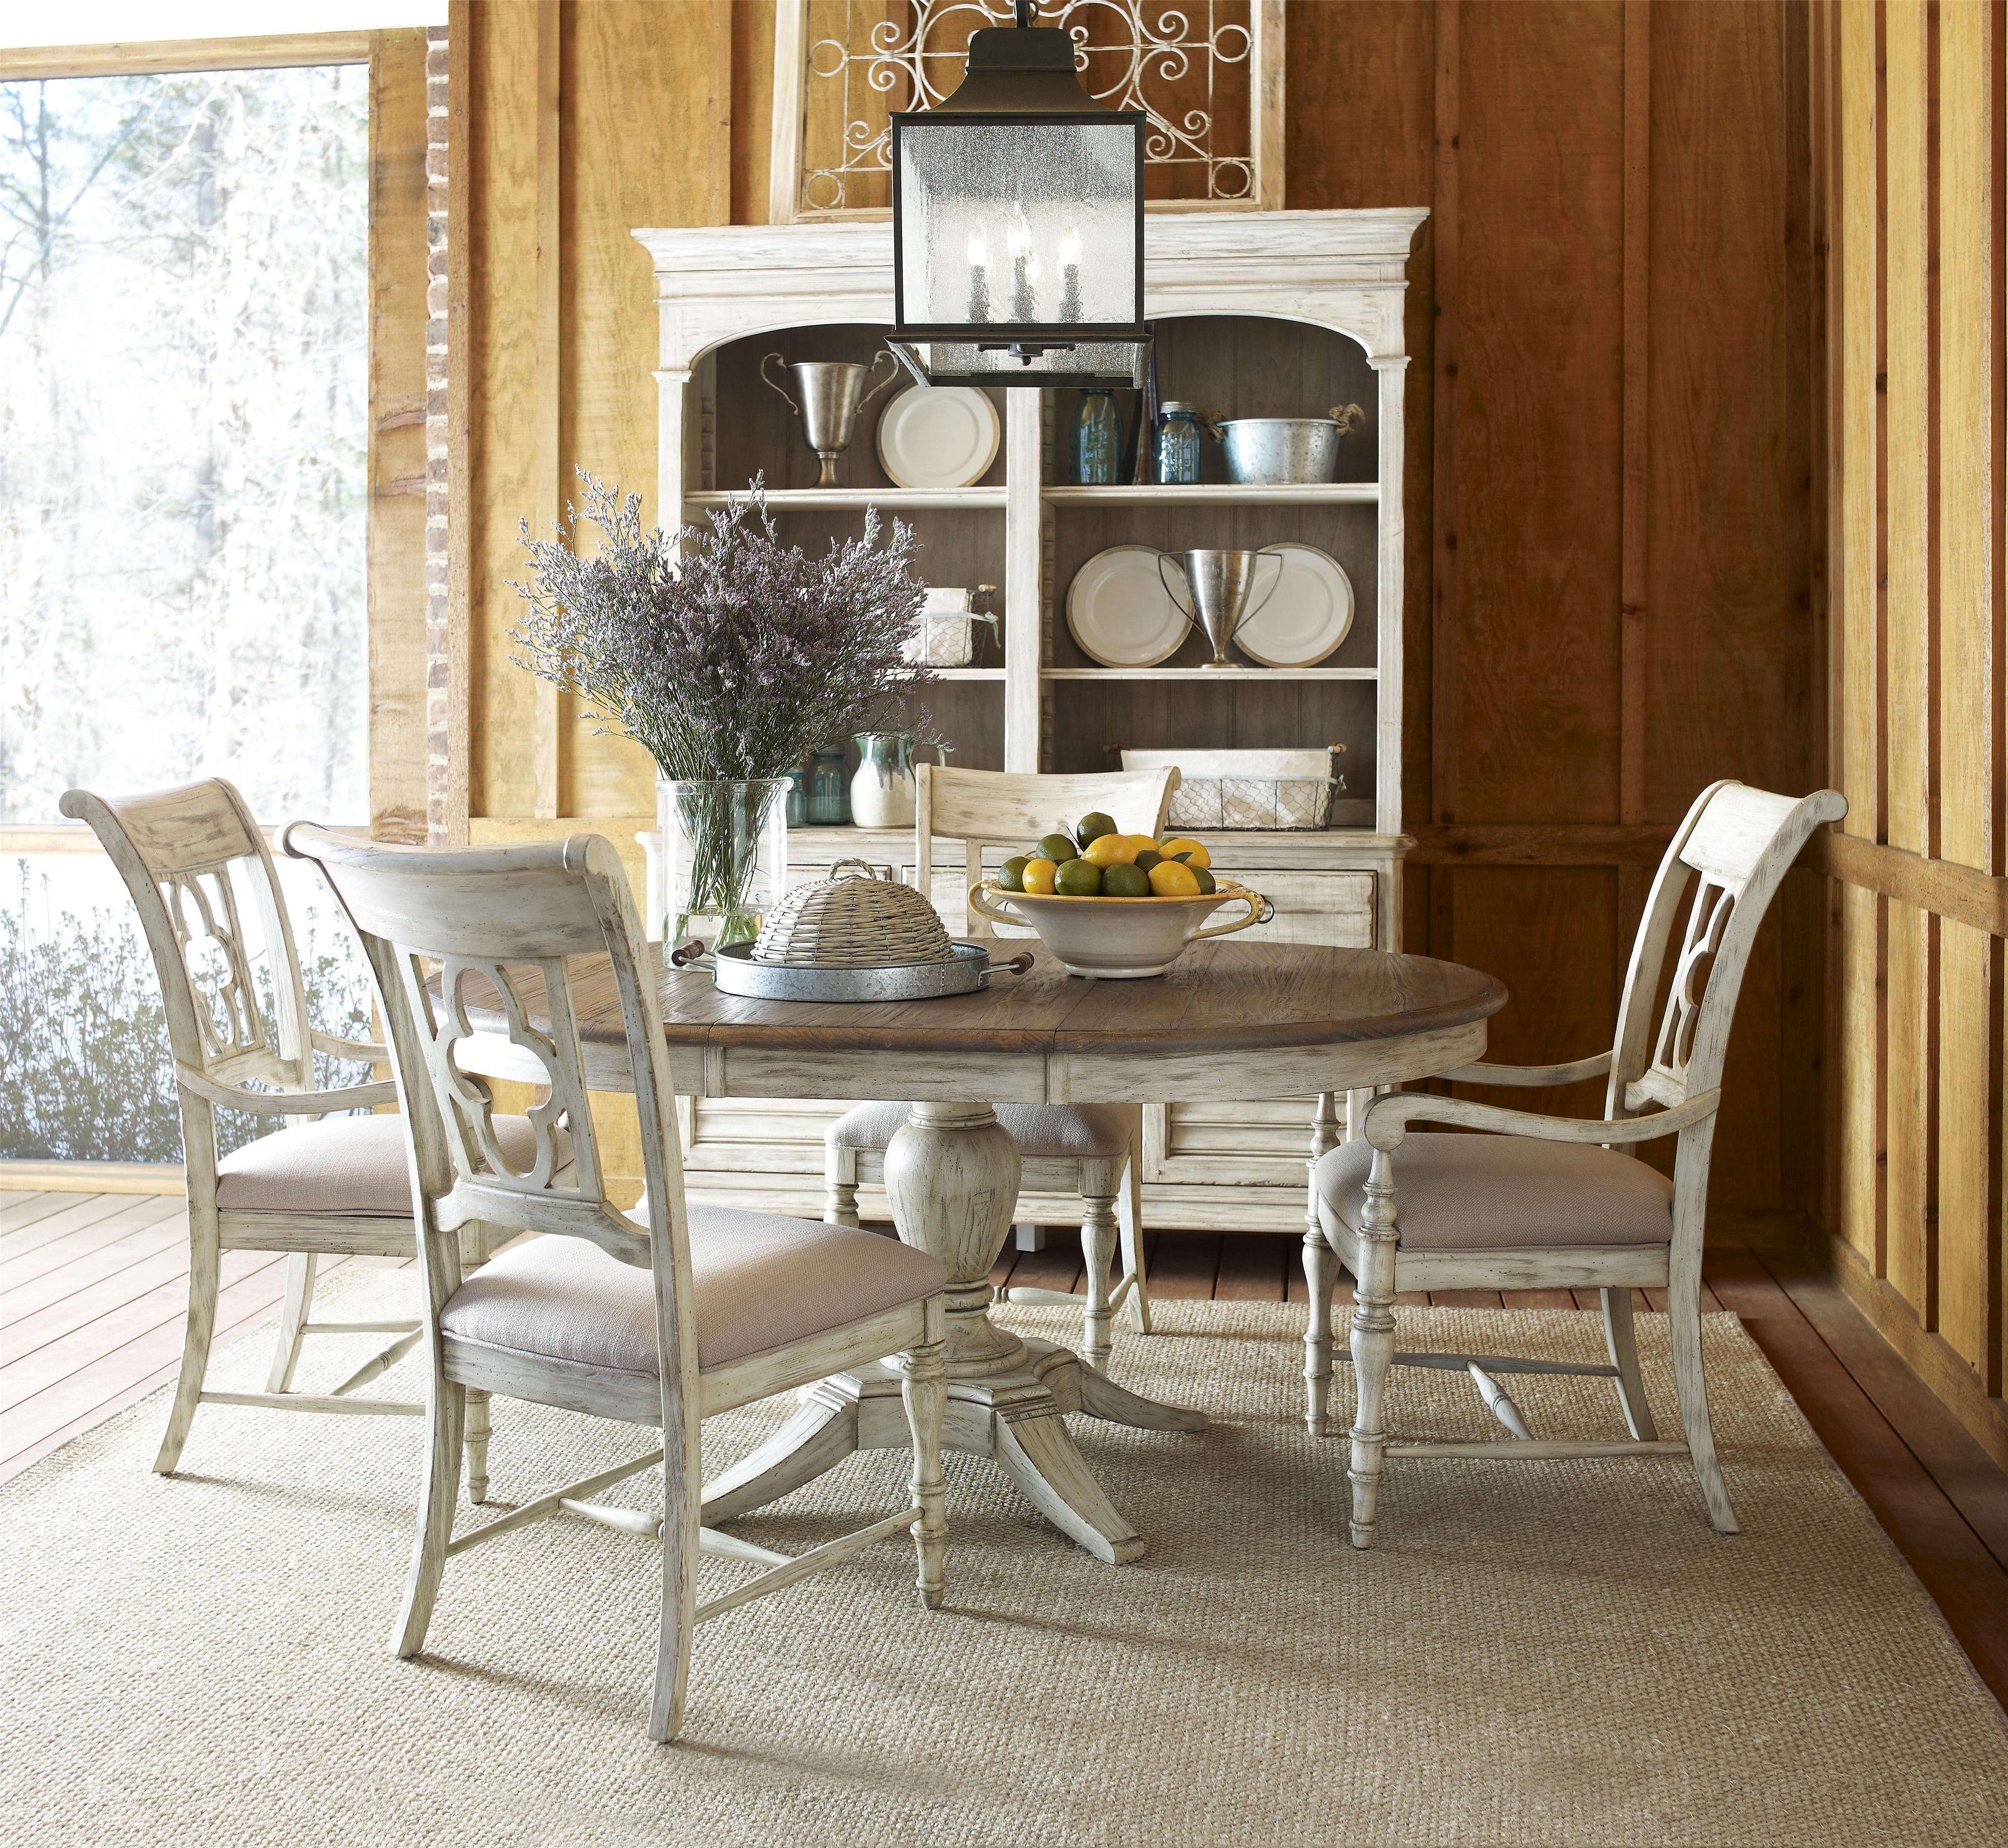 The Milford Dining Table Offers Quaint Cozy Charm With A Vase